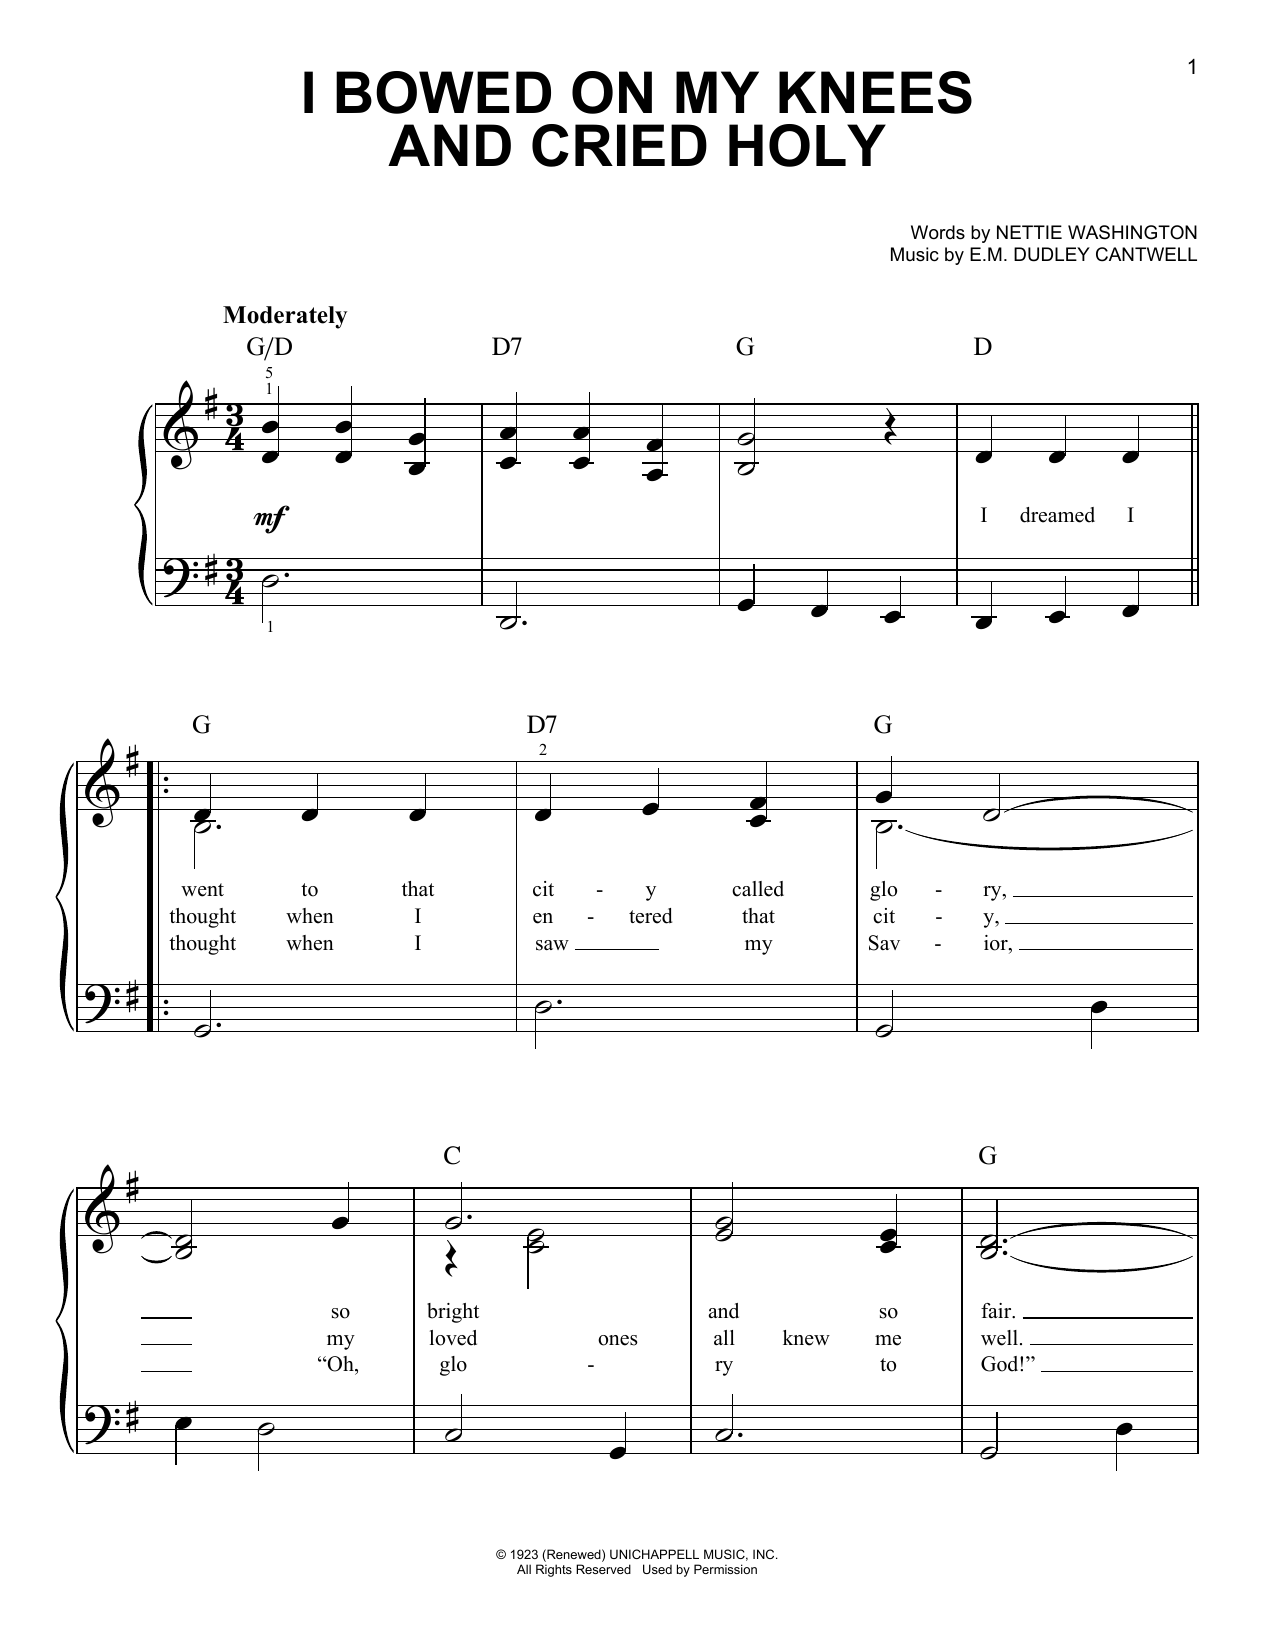 E.M. Dudley Cantwell I Bowed On My Knees And Cried Holy sheet music notes and chords. Download Printable PDF.